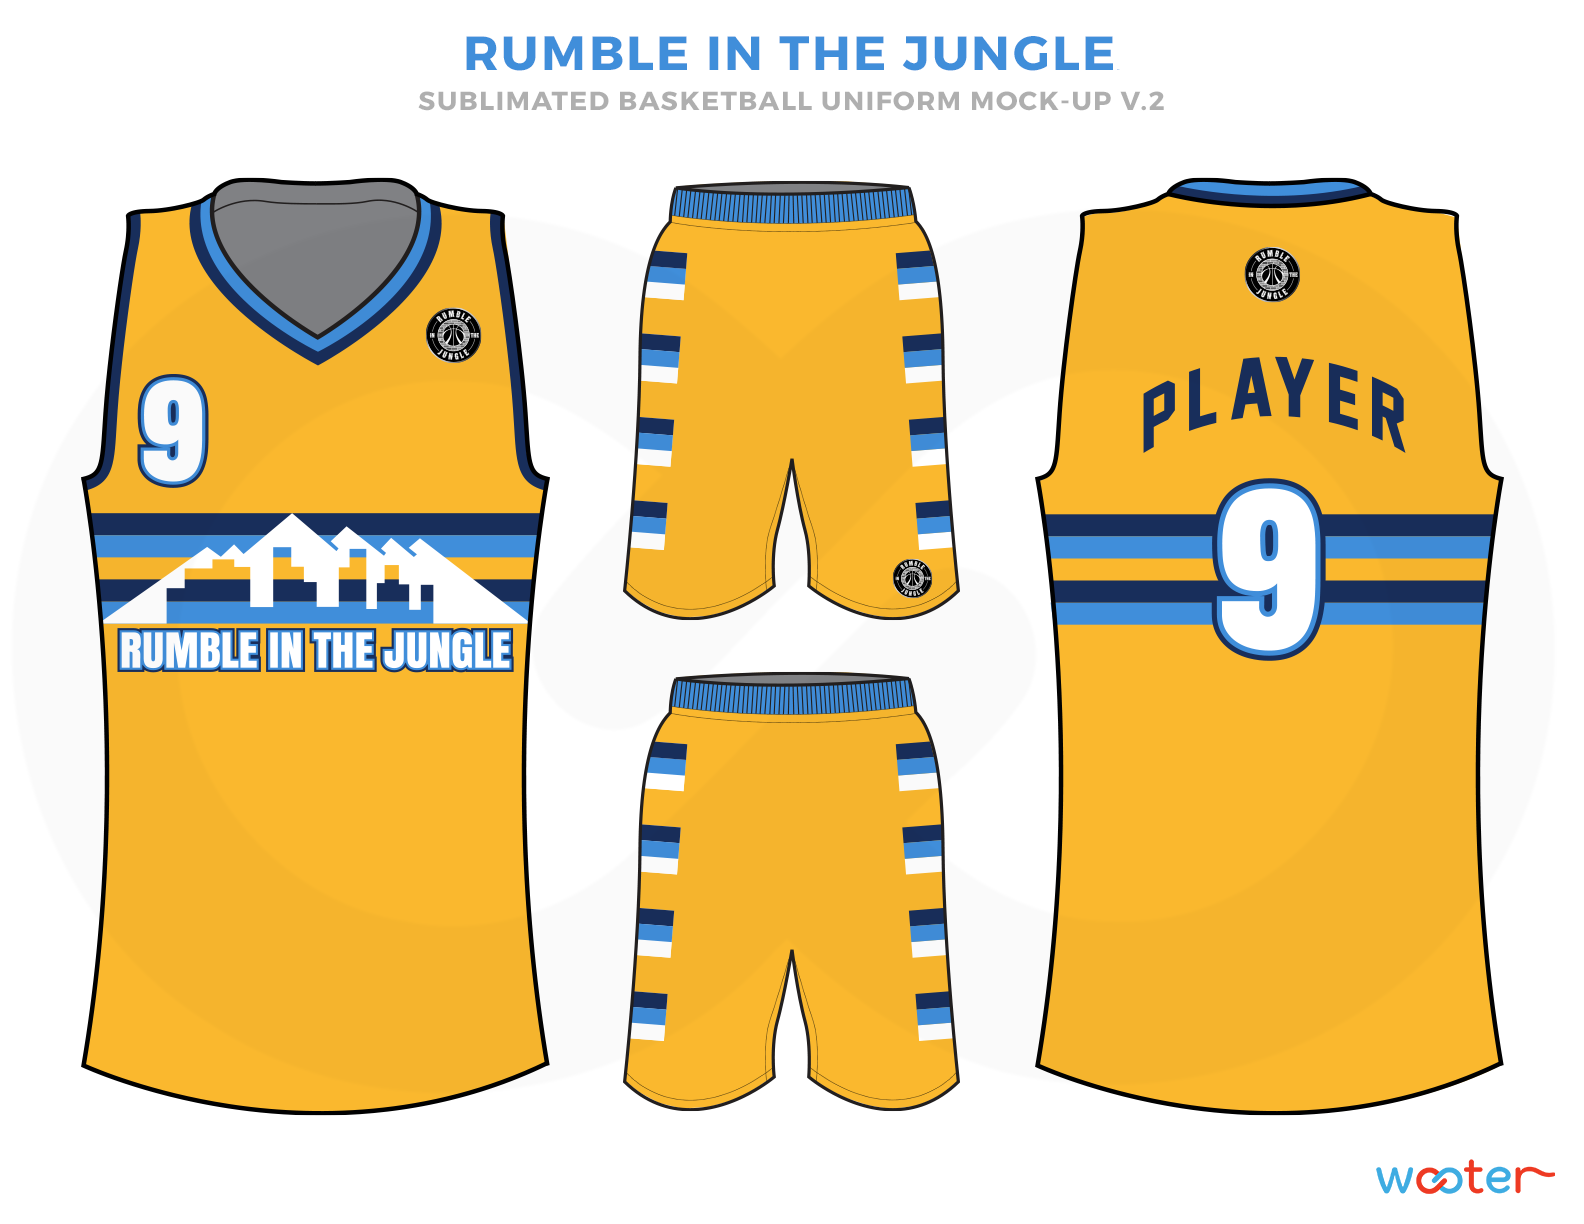 RUMBLE IN THE JUNGLE Yellow Blue Sky and White Basketball Uniforms, Jersey and Shorts